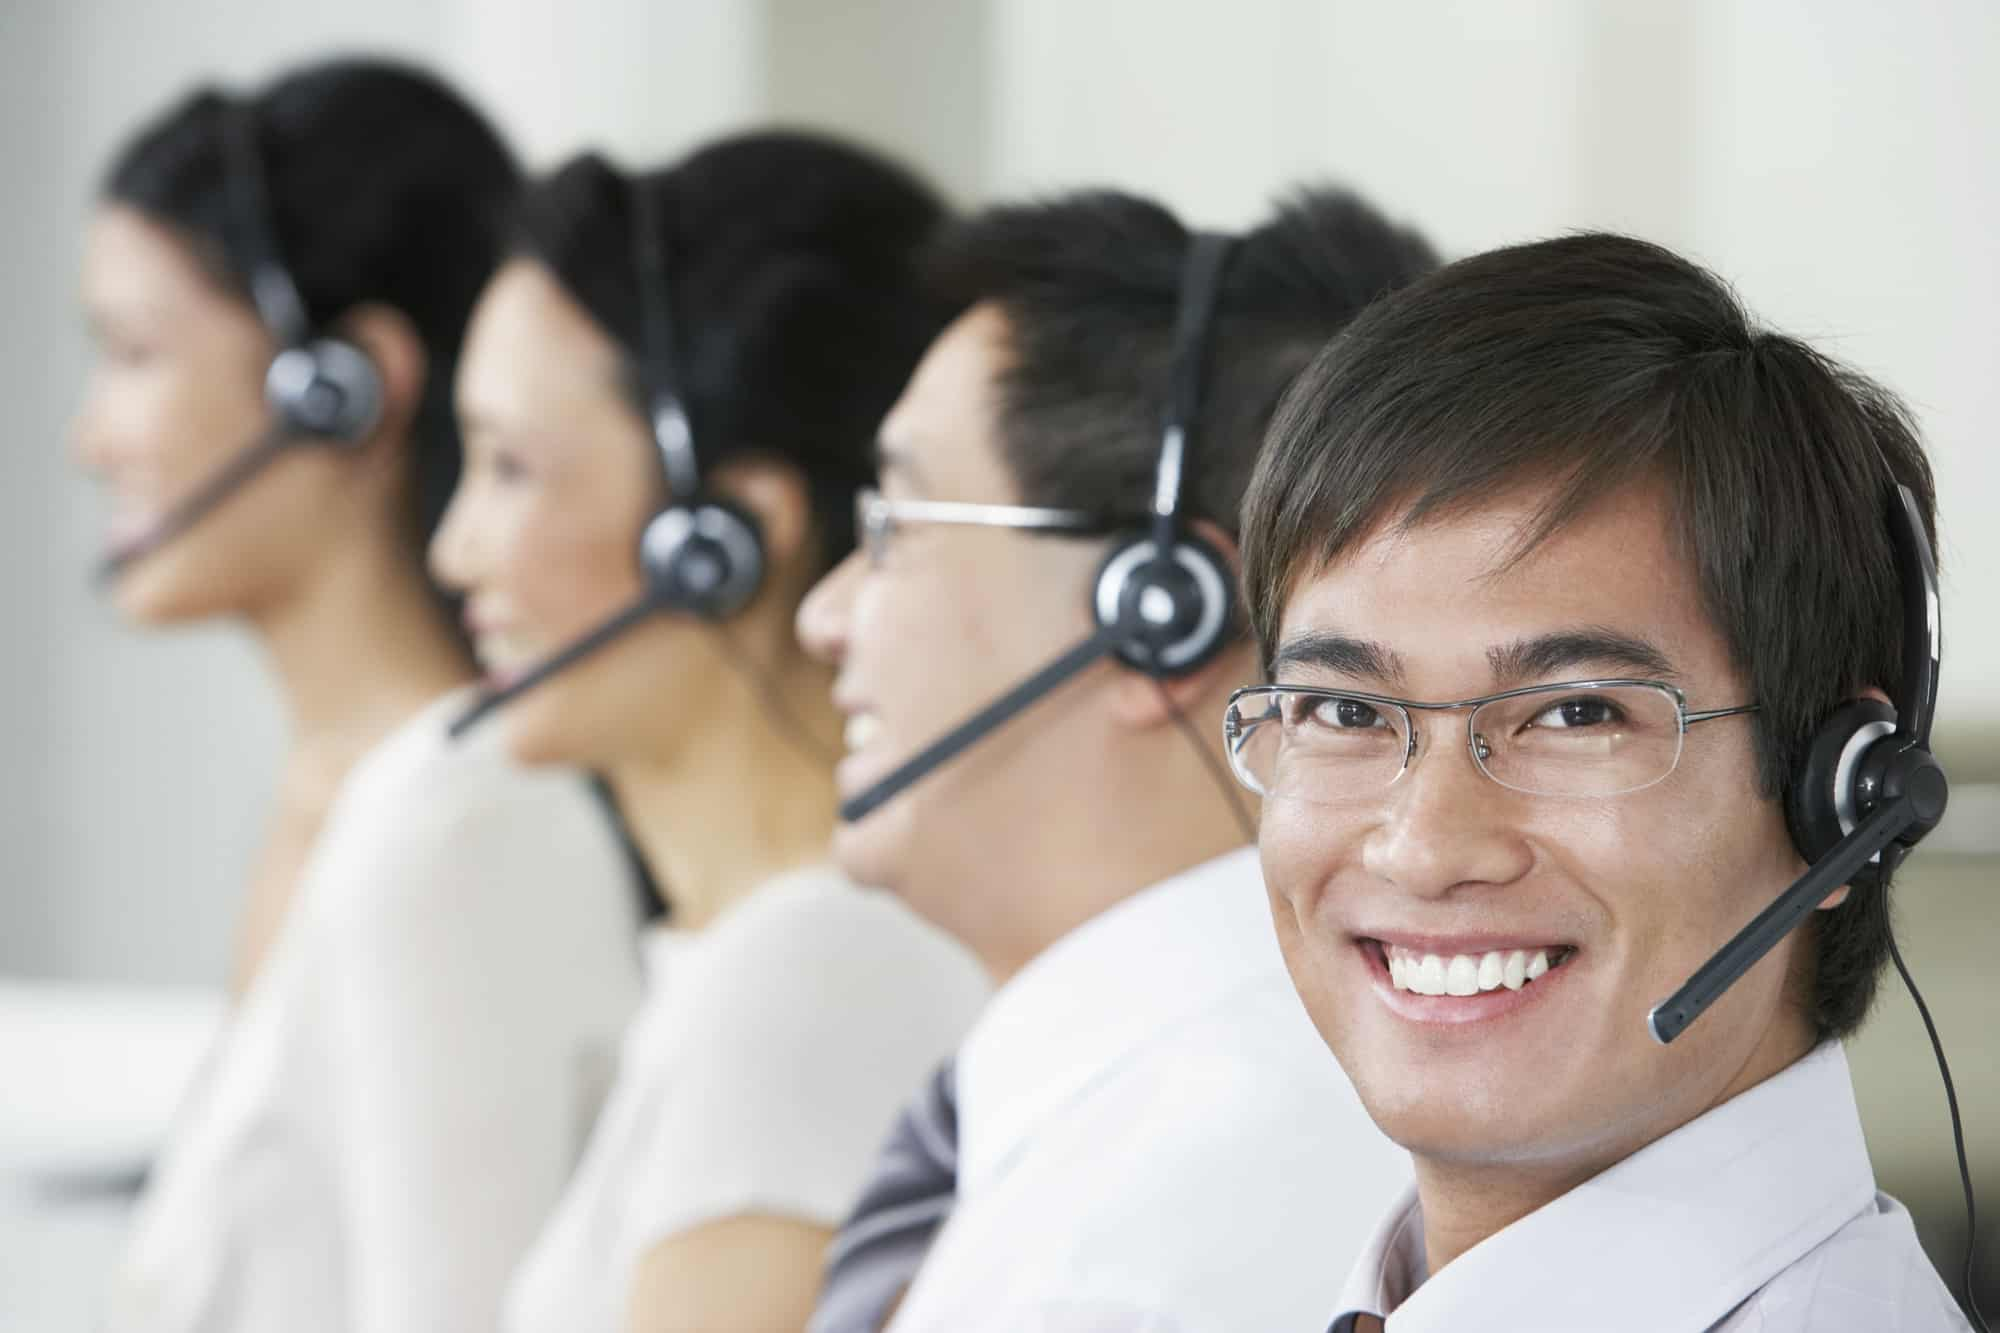 Call Center Workers Image